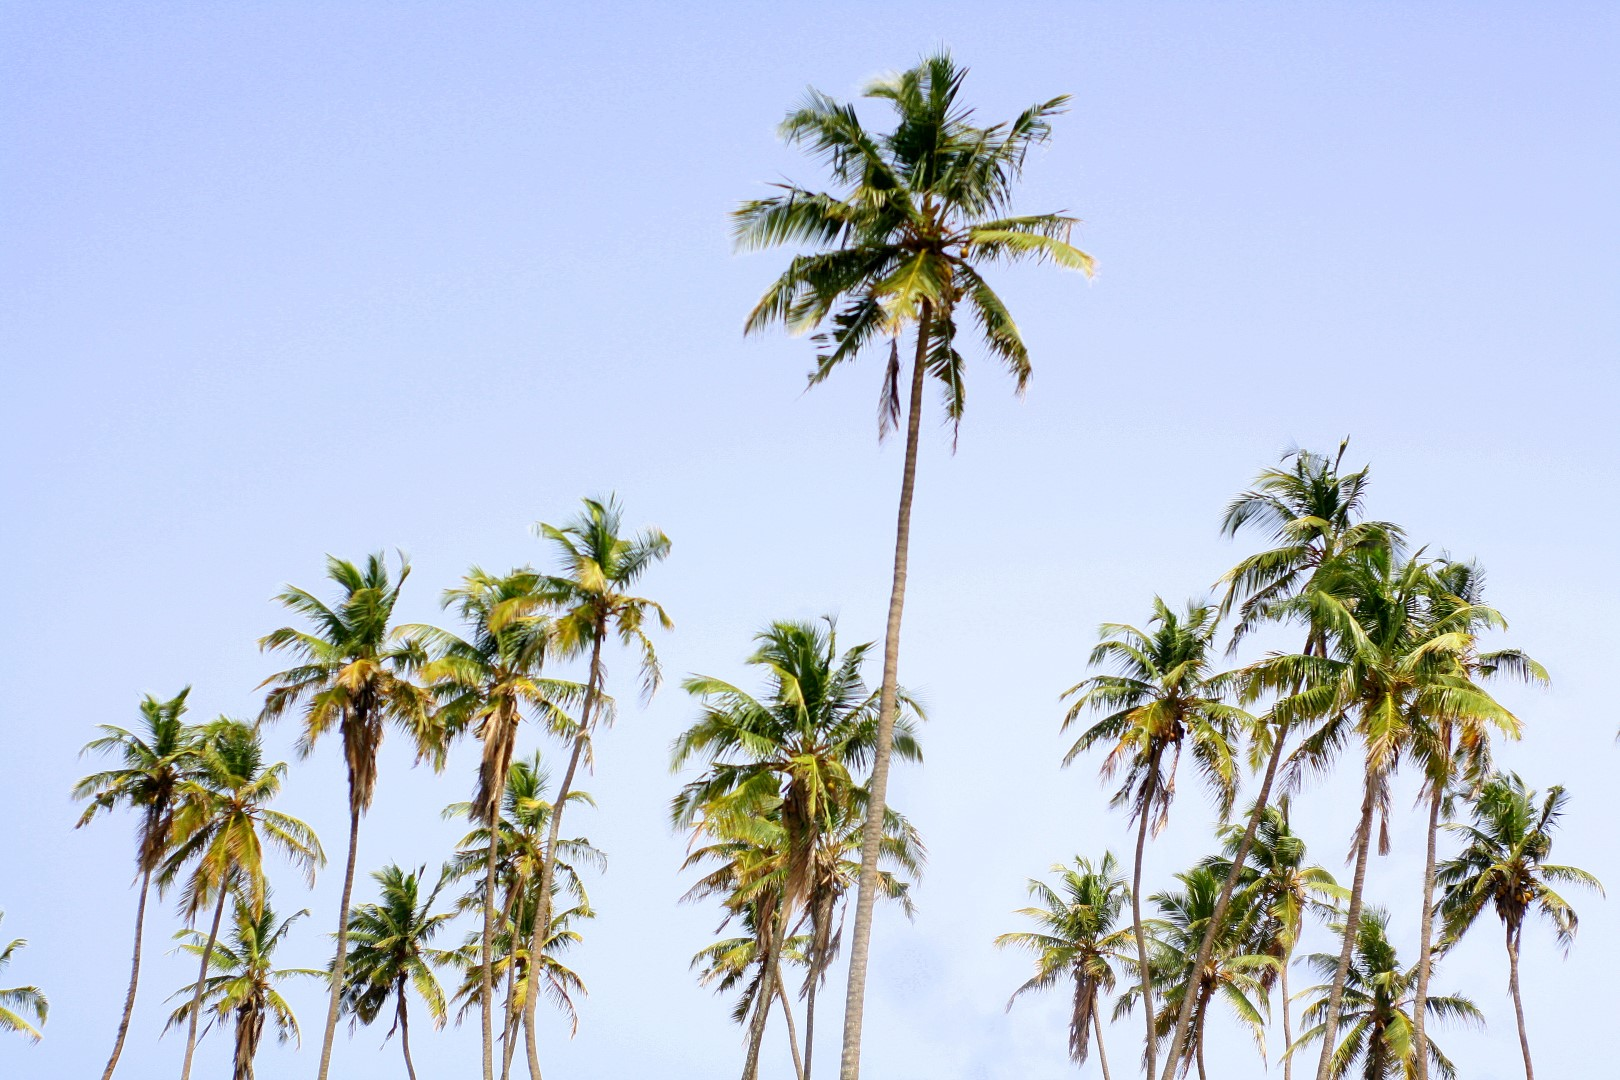 Palm trees at the Badagry beach slave point of no return